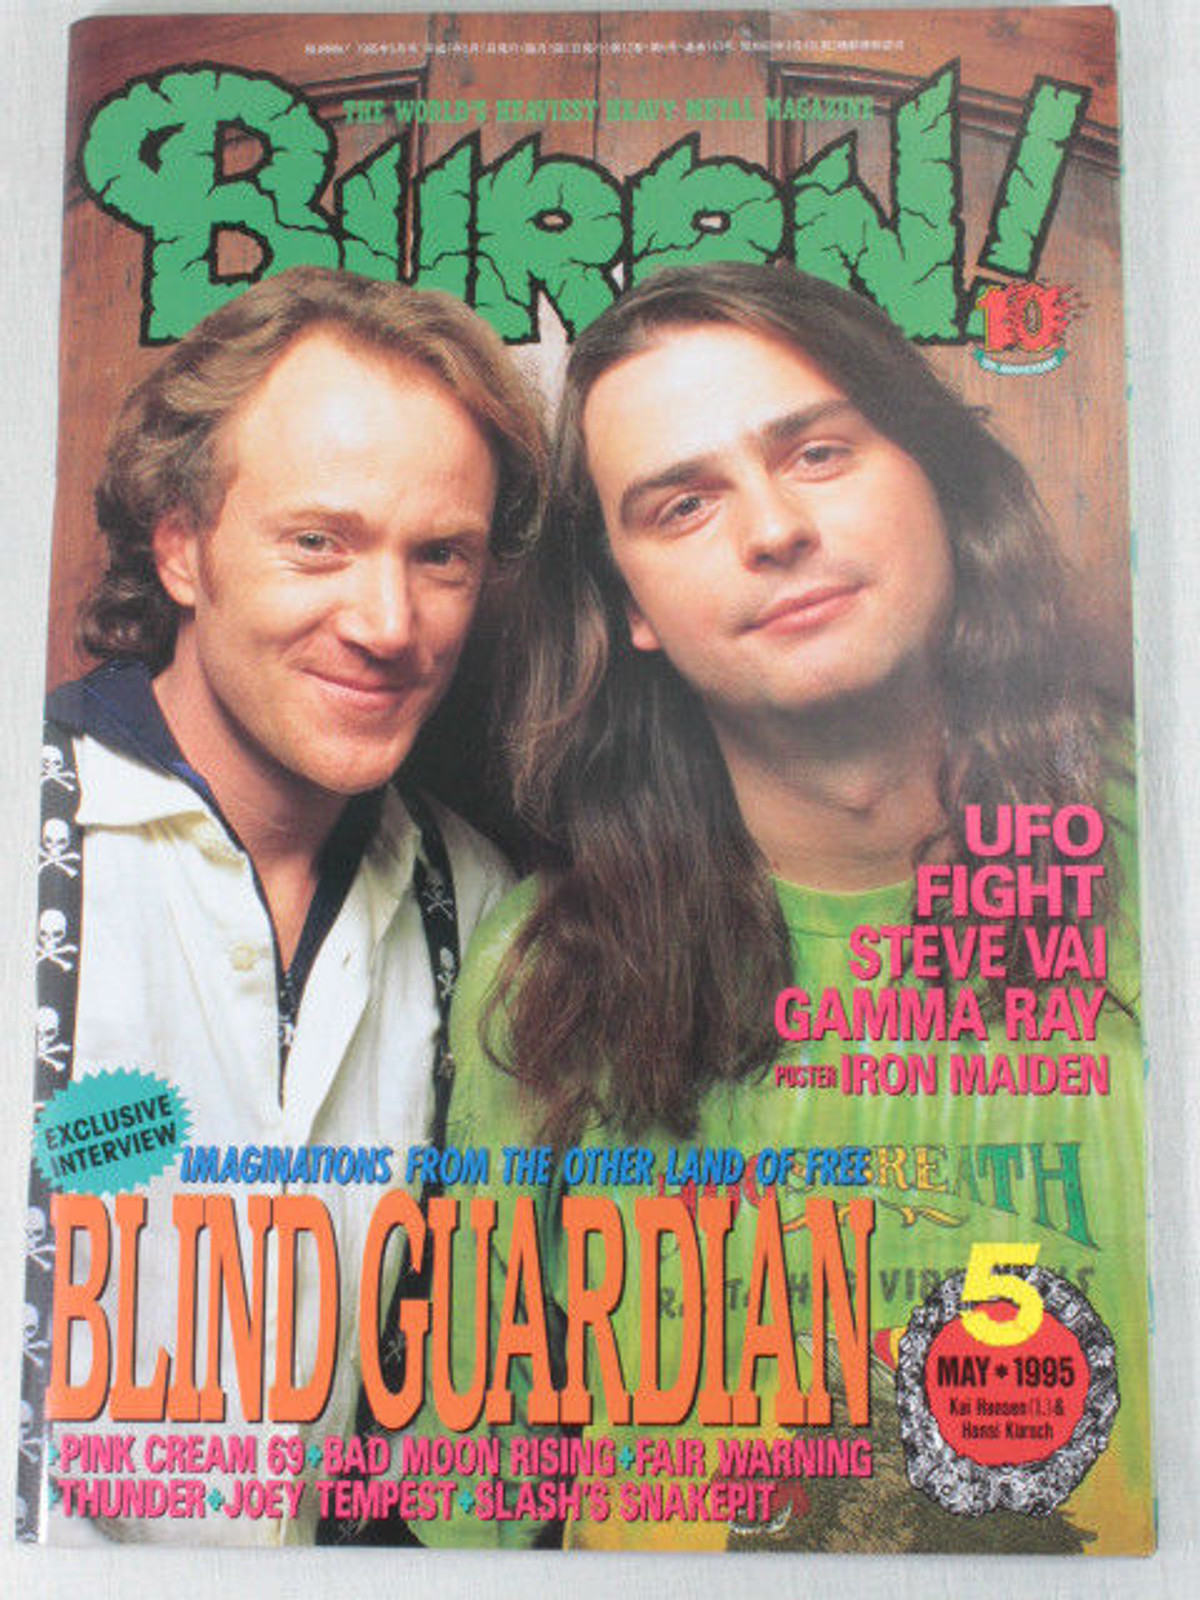 1995/05 BURRN! Japan Rock Magazine IRON MAIDEN/BLIND GUARDIAN/UFO/FIGHT/STEVEVAI